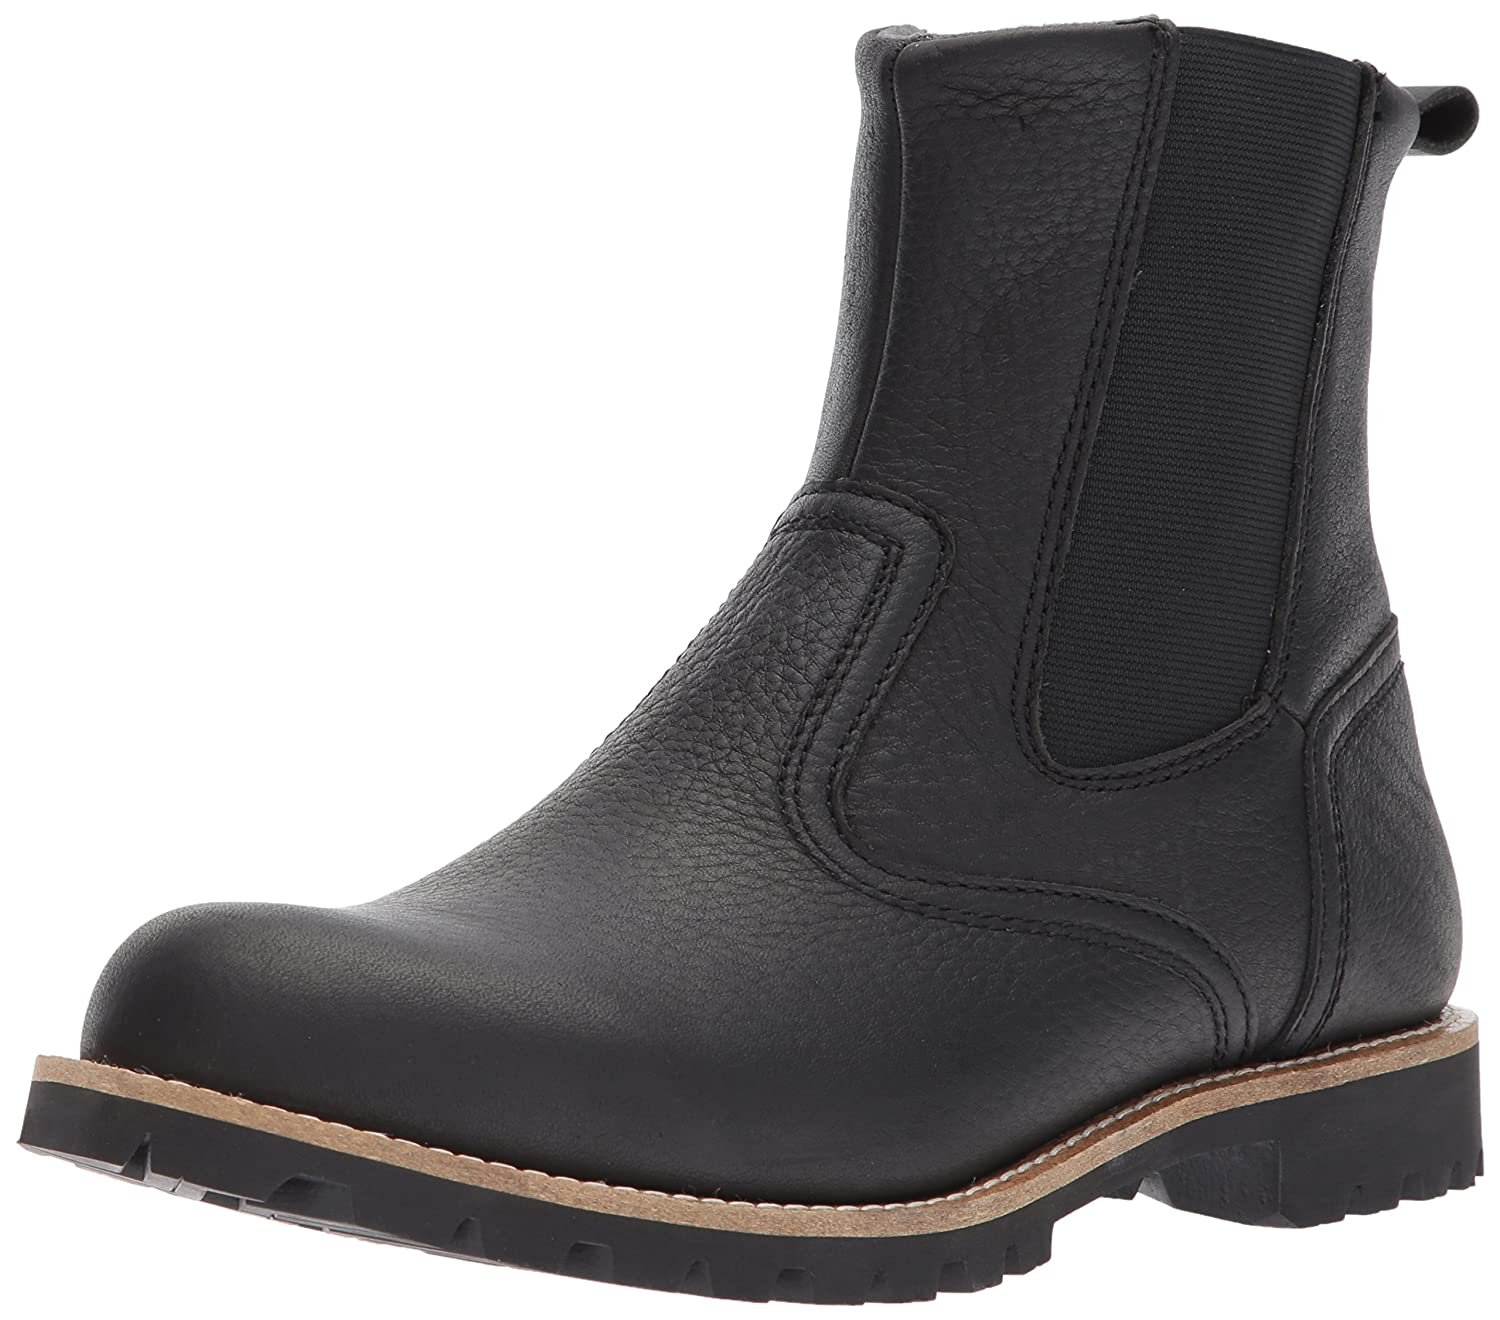 Kodiak Men's Dover Chelsea Boot 422100BLK